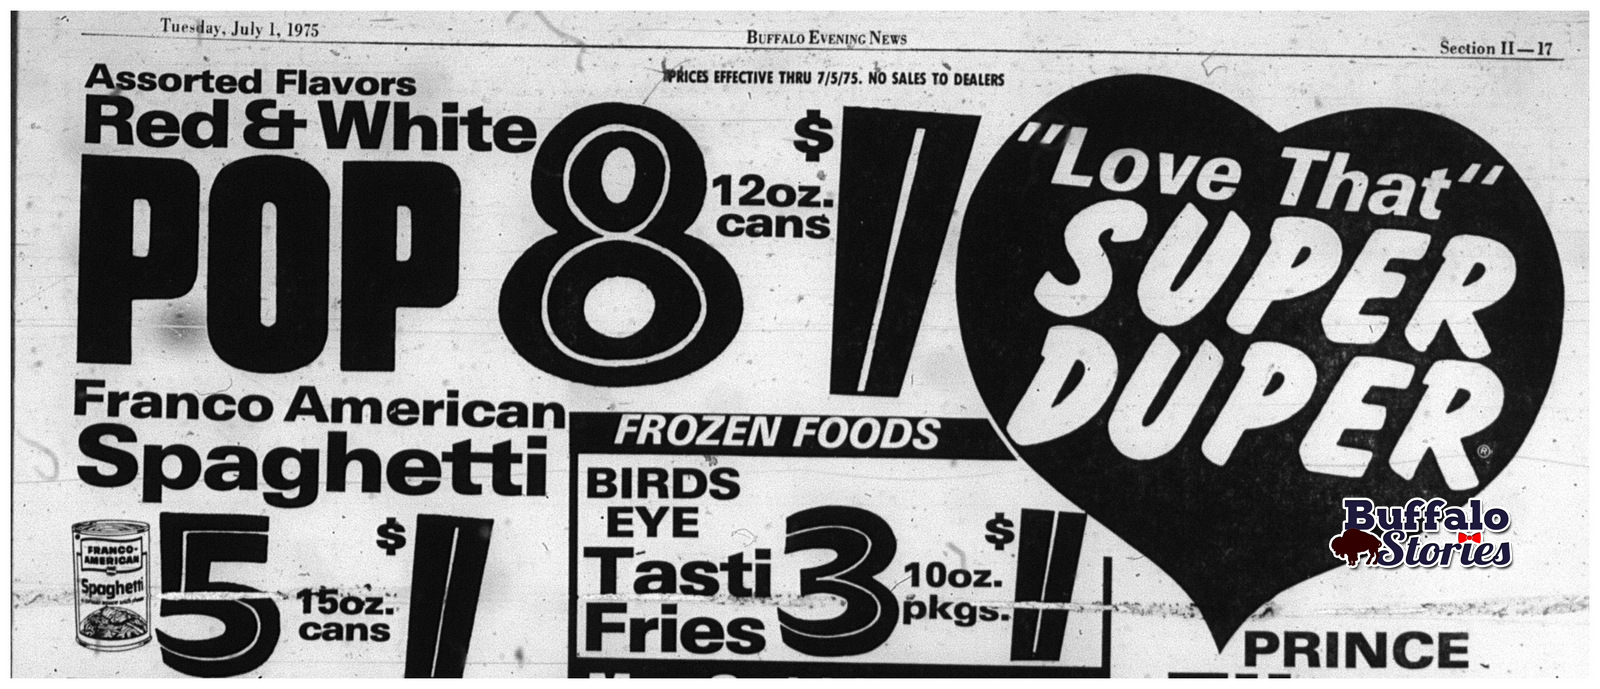 July 4, 1975: What beverages were on sale at Super Duper and